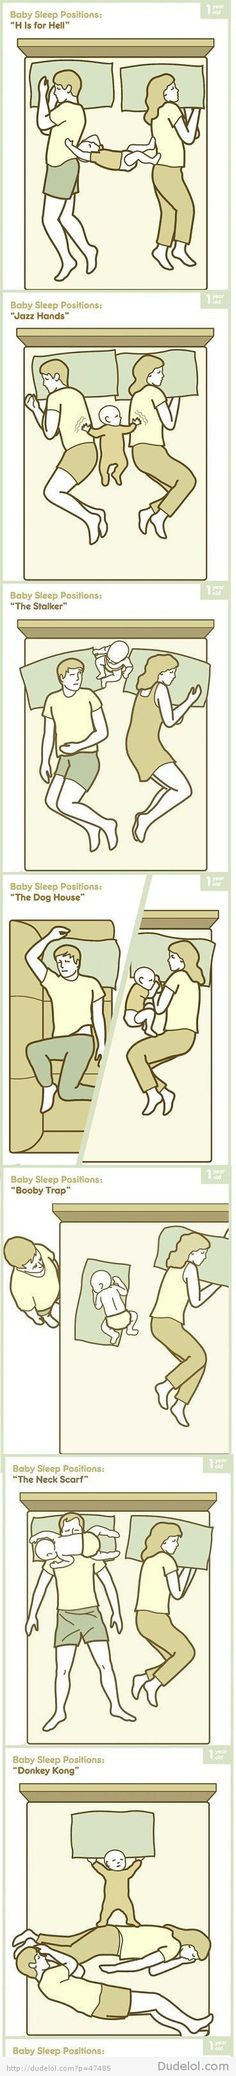 Baby Sleeping Positions!!! Funny but truth